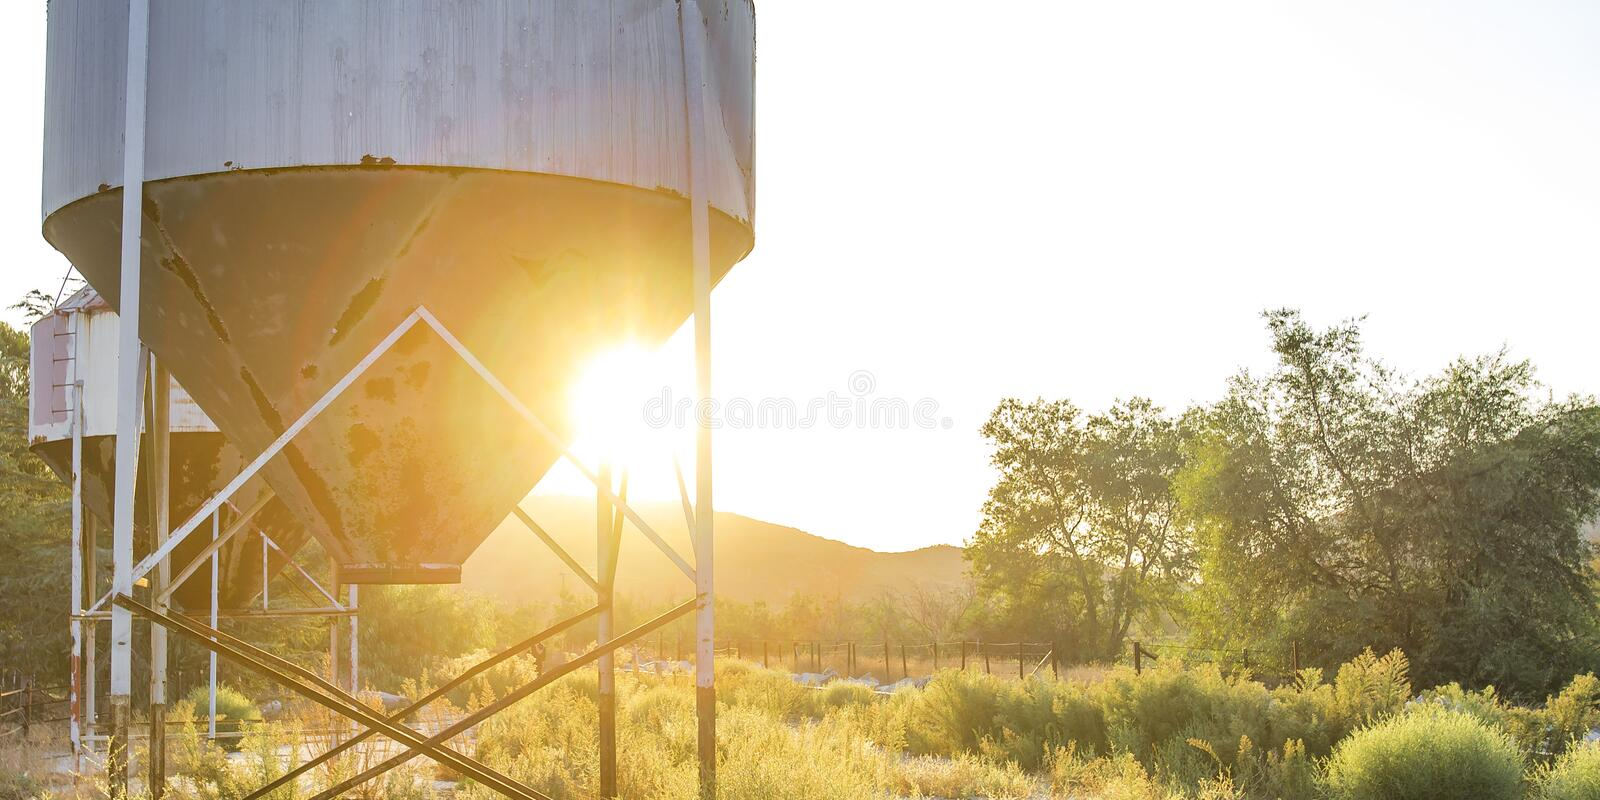 Abandoned tanks with funnel bottom at sunset royalty free stock photography